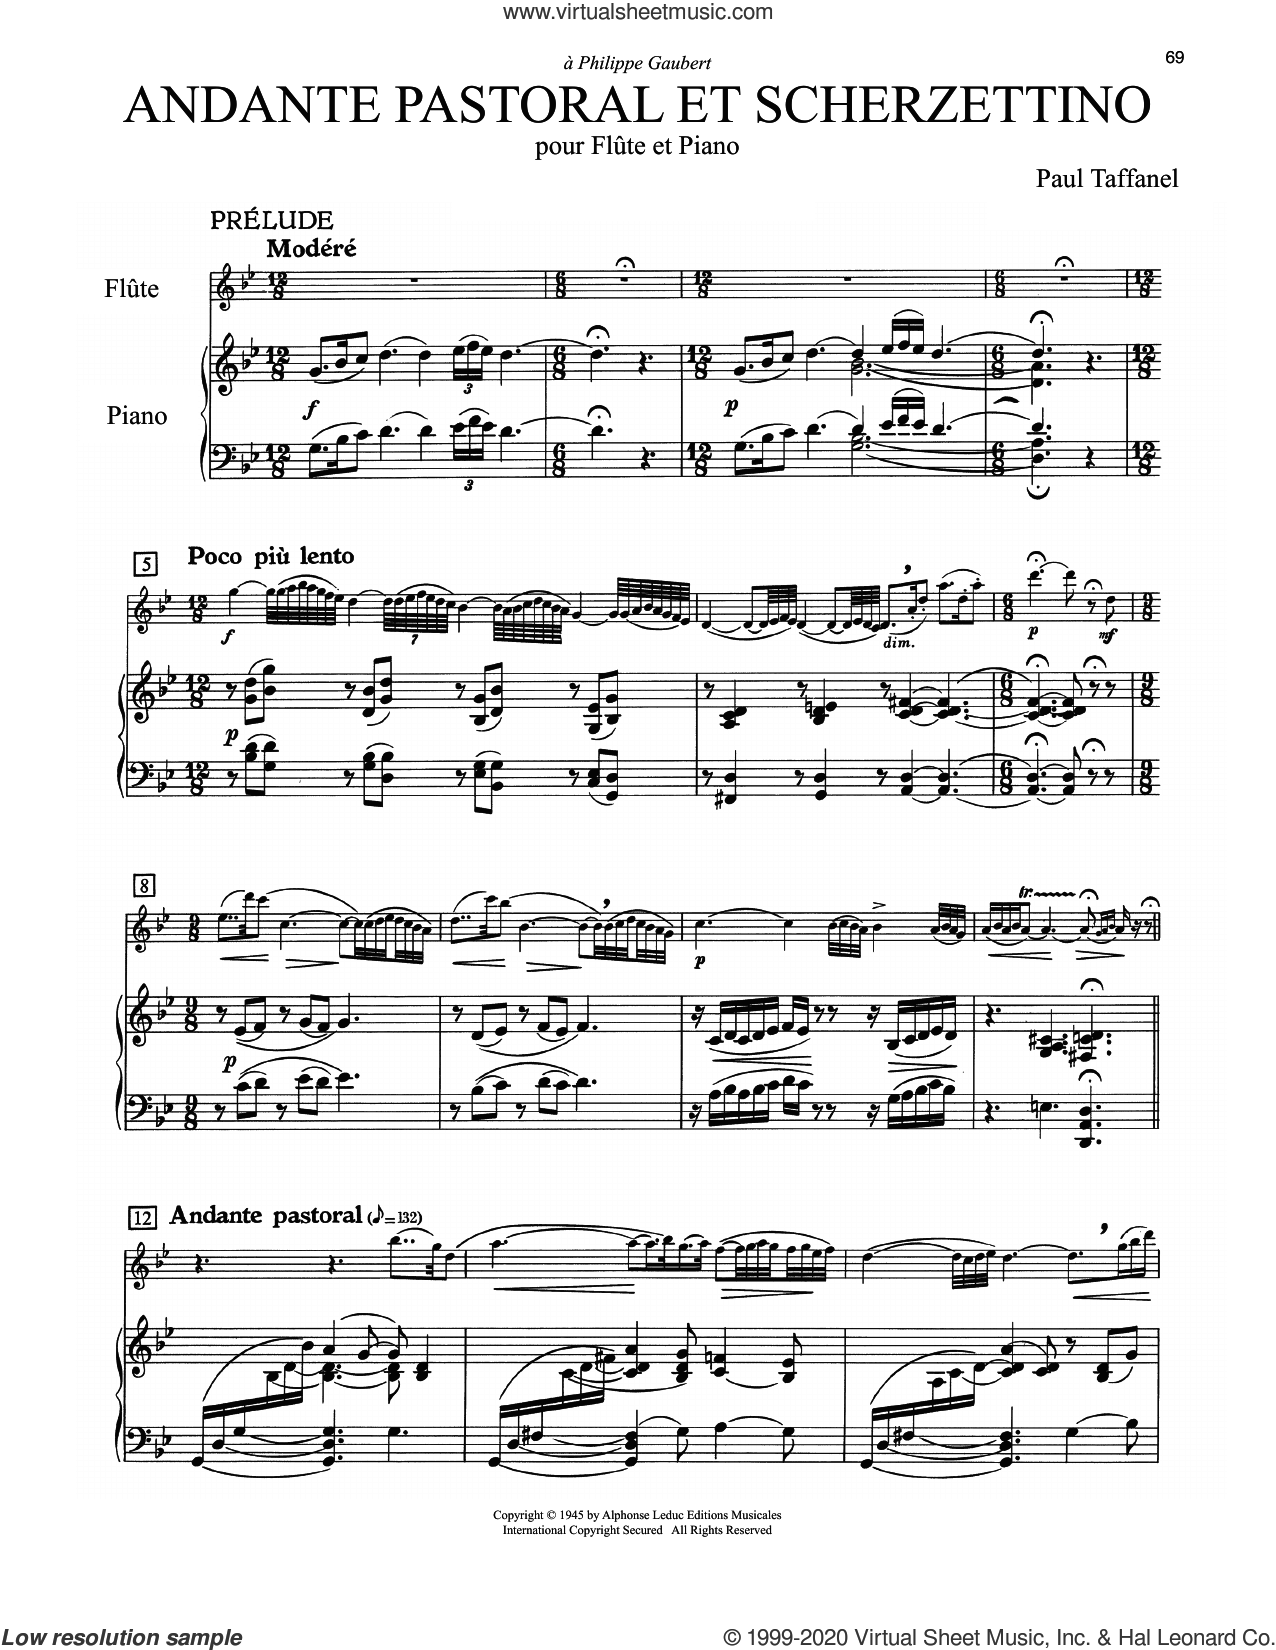 Andante Pastoral Et Scherzettino sheet music for flute and piano by Paul Taffanel, classical score, intermediate skill level